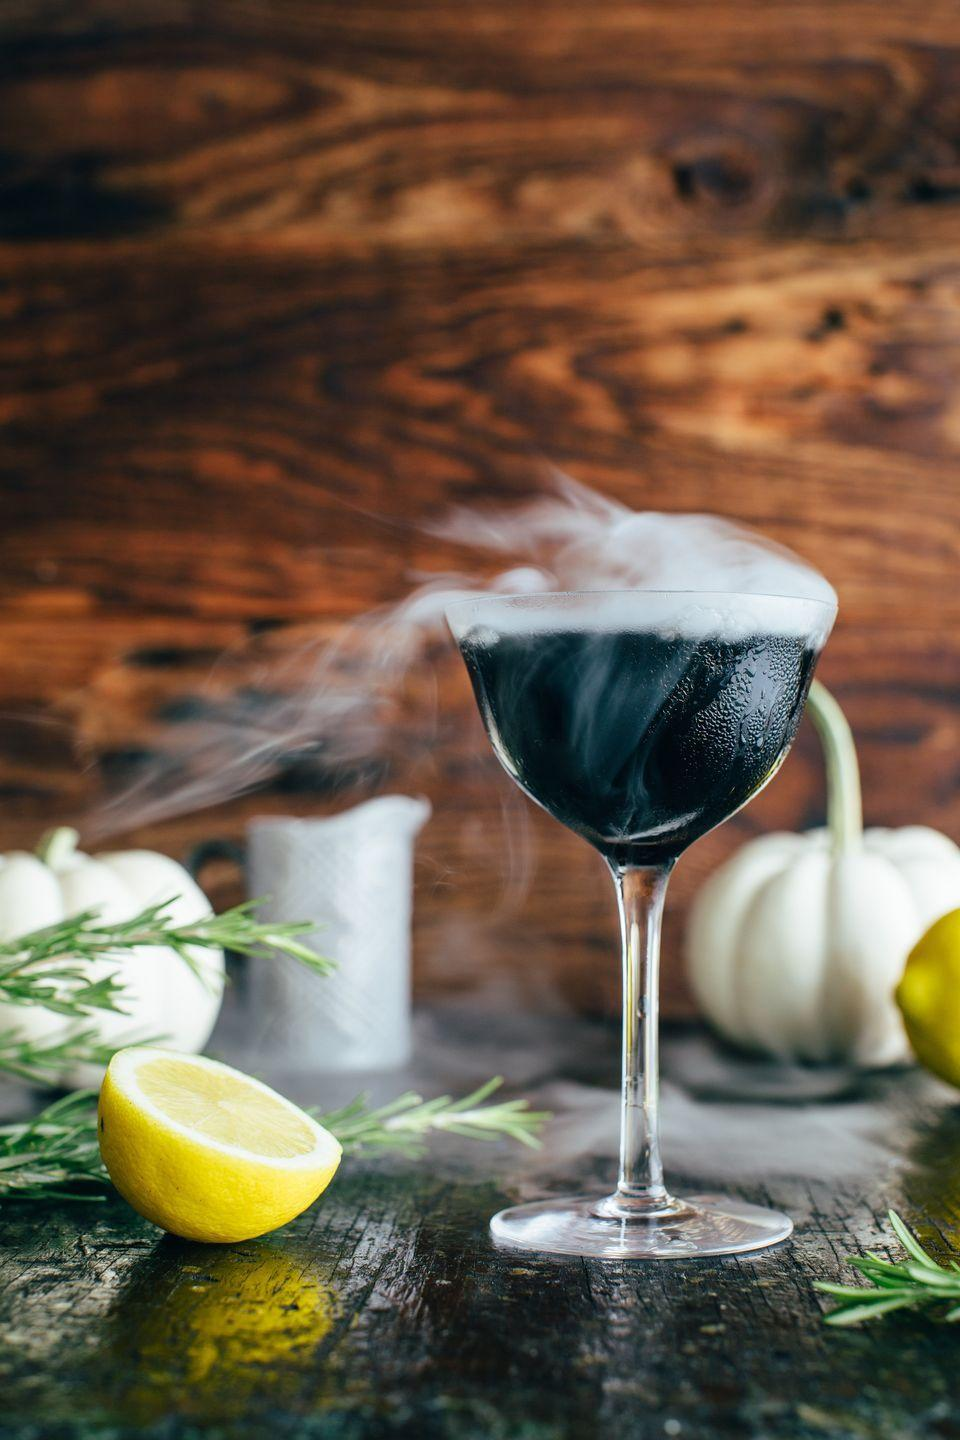 """<p>This jet-black cocktail has a chilling mist that's eery <em>and</em> fun. It's made with bourbon and a homemade rosemary cola syrup that's easy to prep ahead of your Halloween party. </p><p><strong>Get the recipe at <a href=""""https://www.kitchenkonfidence.com/2019/10/midnight-fog-a-halloween-cocktail-recipe"""" rel=""""nofollow noopener"""" target=""""_blank"""" data-ylk=""""slk:Kitchen Konfidence"""" class=""""link rapid-noclick-resp"""">Kitchen Konfidence</a>. </strong></p><p><a class=""""link rapid-noclick-resp"""" href=""""https://go.redirectingat.com?id=74968X1596630&url=https%3A%2F%2Fwww.walmart.com%2Fsearch%2F%3Fquery%3Dglasses&sref=https%3A%2F%2Fwww.thepioneerwoman.com%2Fholidays-celebrations%2Fg36982659%2Fhalloween-drink-recipes%2F"""" rel=""""nofollow noopener"""" target=""""_blank"""" data-ylk=""""slk:SHOP GLASSES"""">SHOP GLASSES</a></p>"""